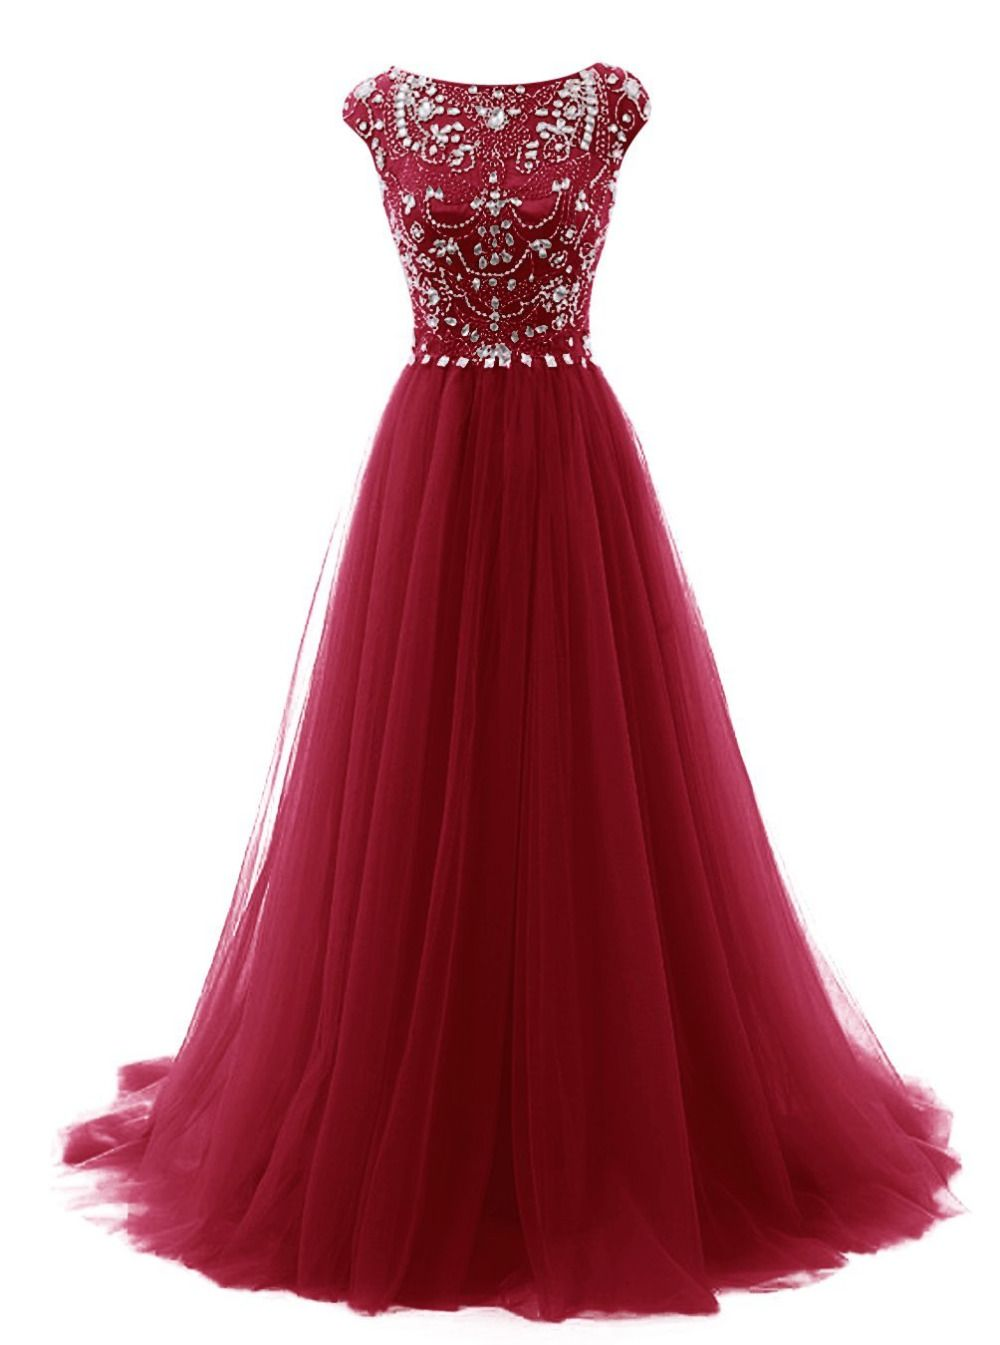 Sparkly crystal beadings long prom dresses boat neck cap sleeves